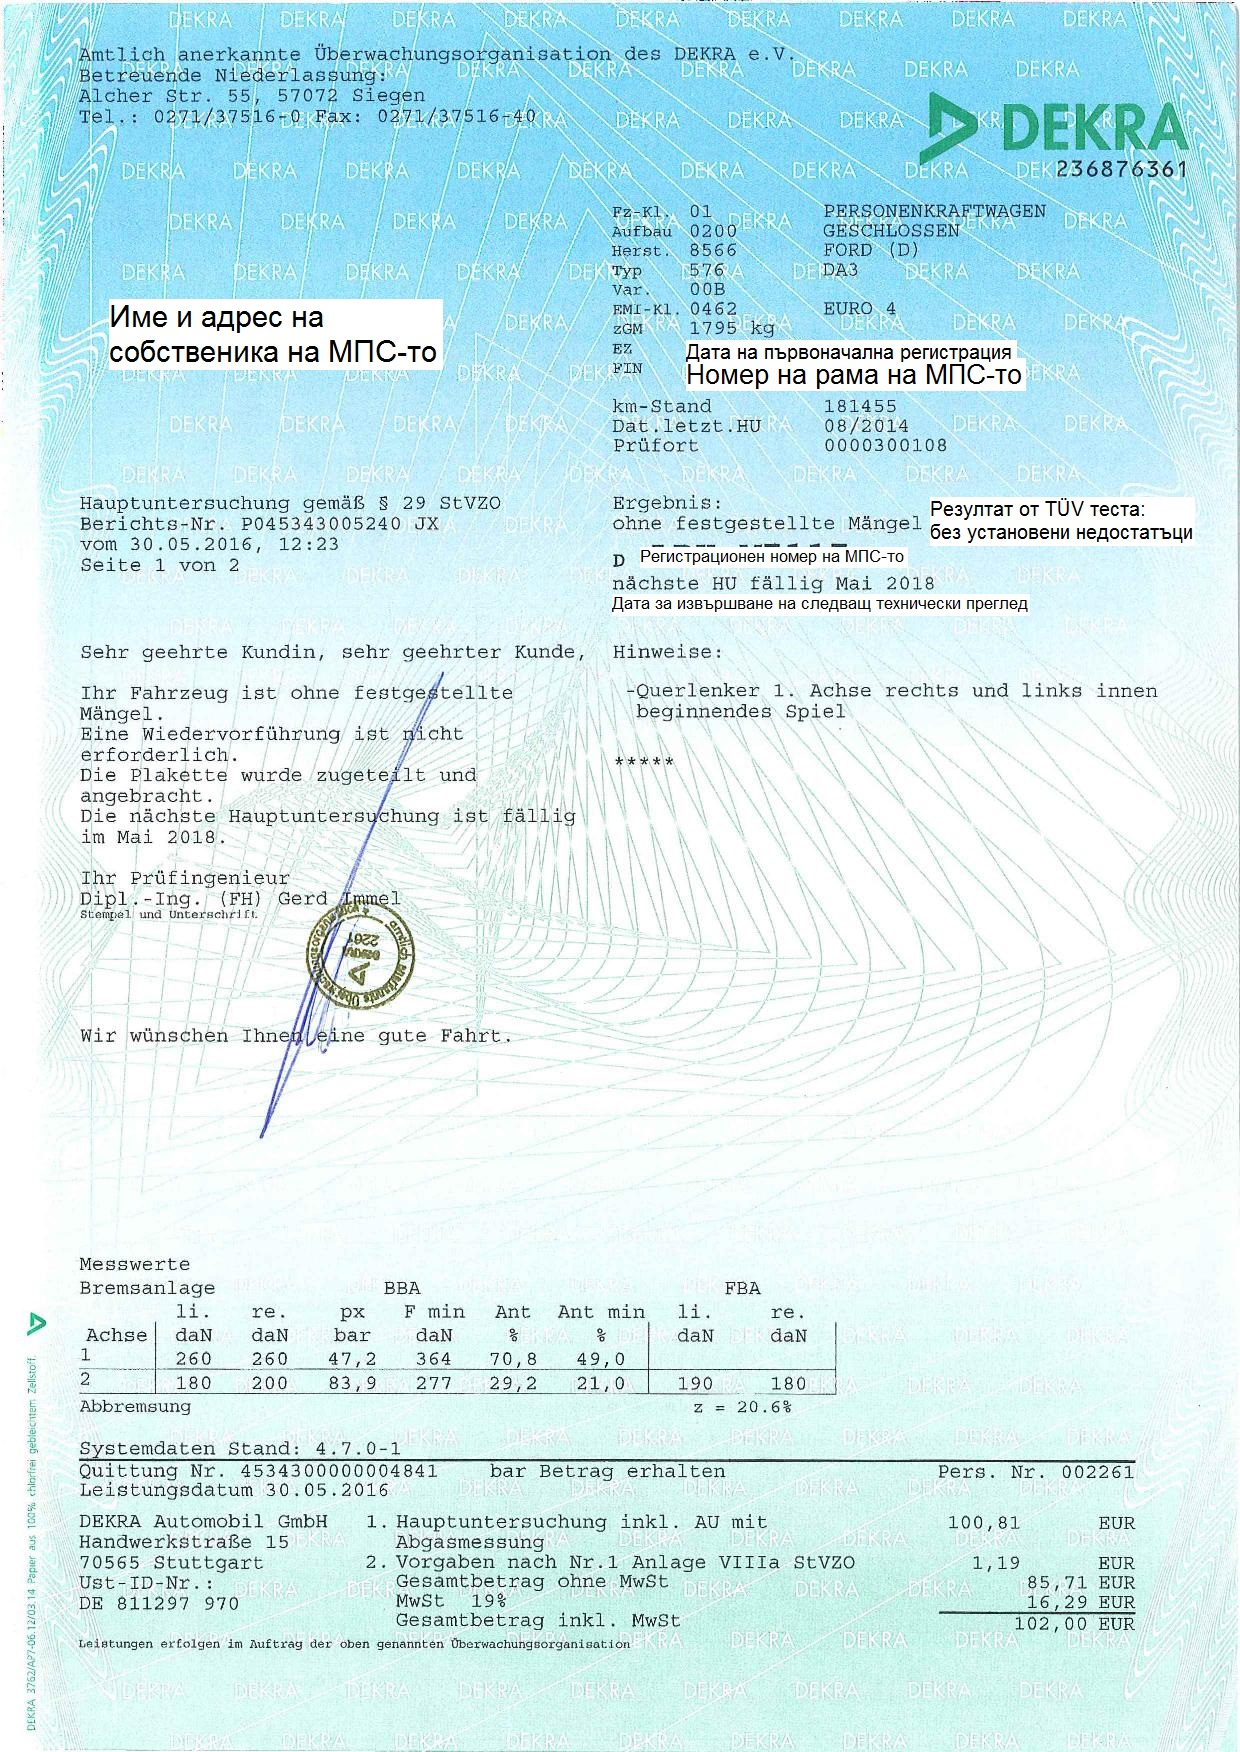 Document for successful completion of TÜV Dekra test (technical check)